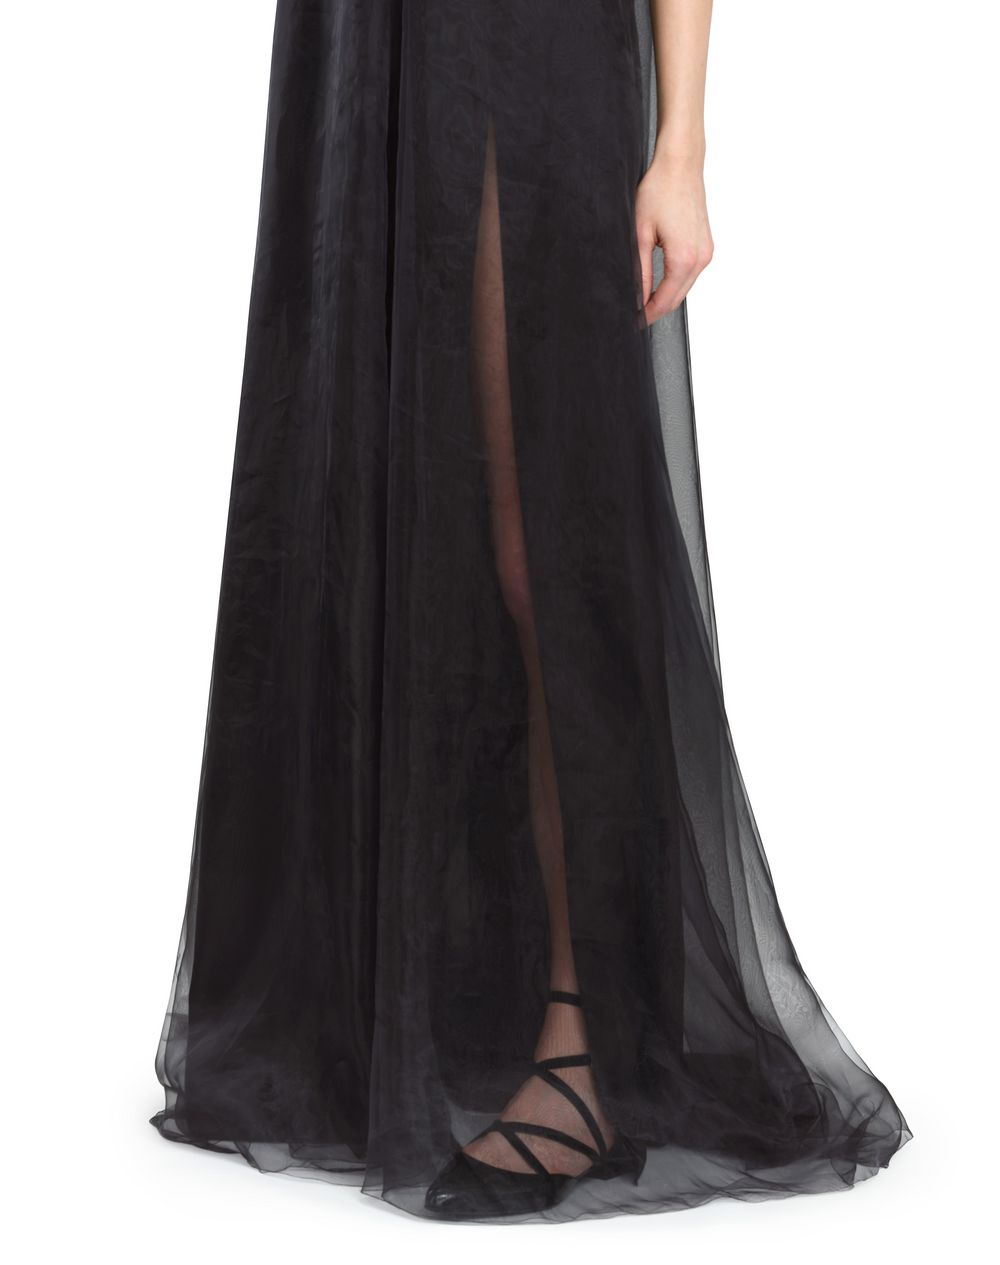 Lanvin Woman Silk-chiffon Maxi Skirt Black Size 34 Lanvin Clearance Hot Sale Sale Footlocker Free Shipping Best Store To Get Free Shipping Wholesale Price 48zWTAagz